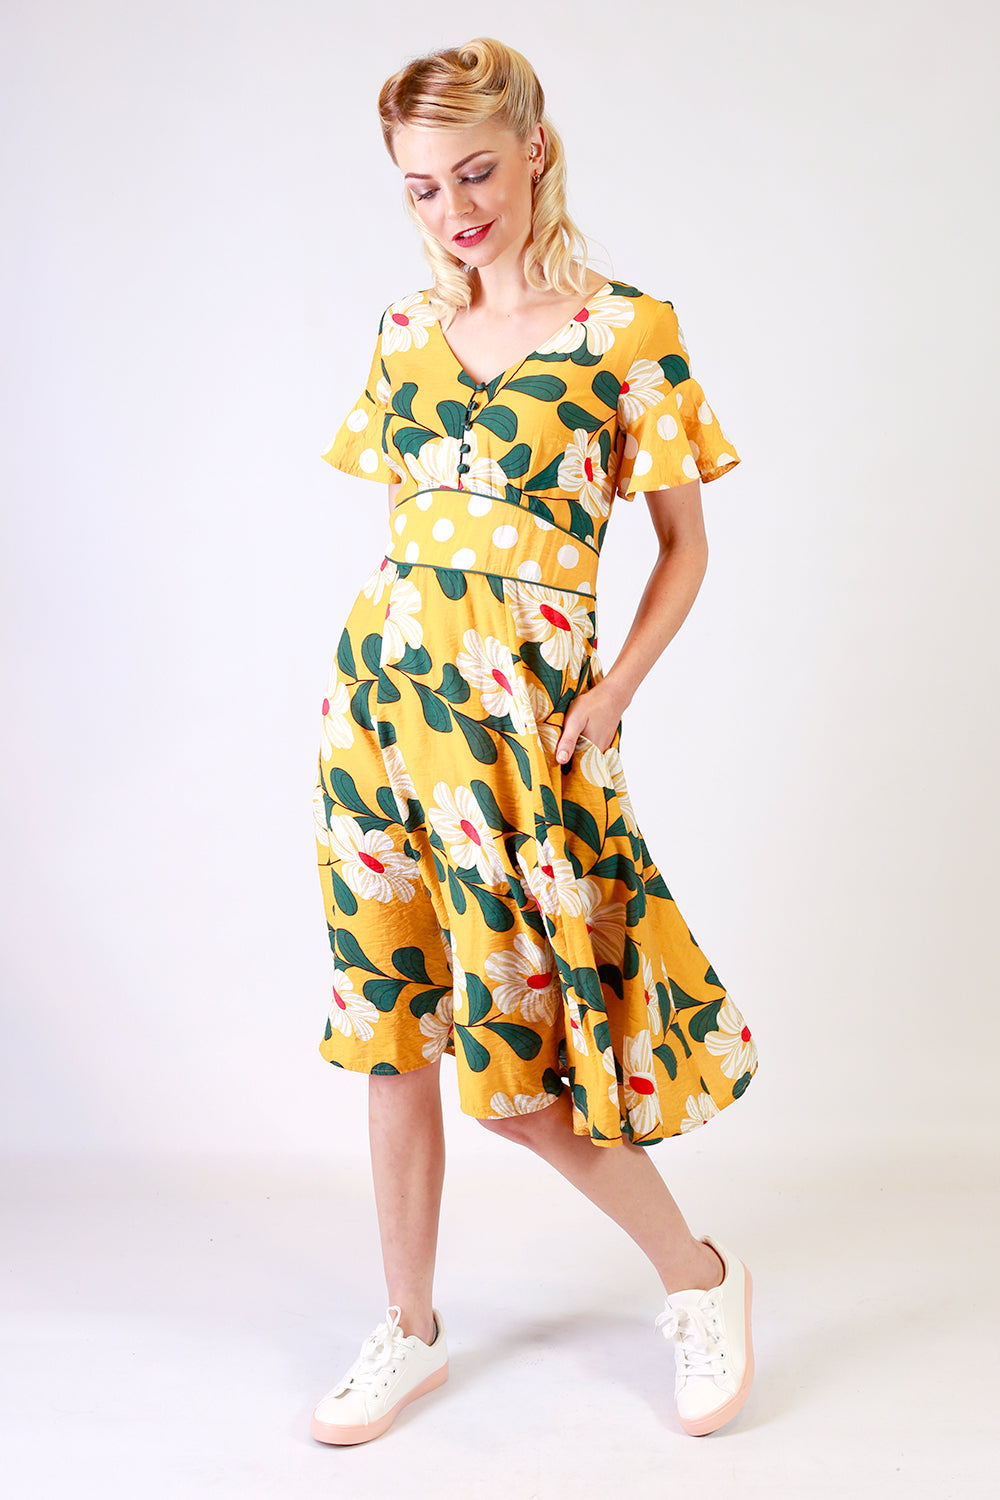 Tillys Corner Dress | Mid Length Dresses NZ | Designer Fashion NZ / Evening Dresses NZ / Floral Dresses NZ / Evening Wear NZ NZ | Floral Dresses NZ